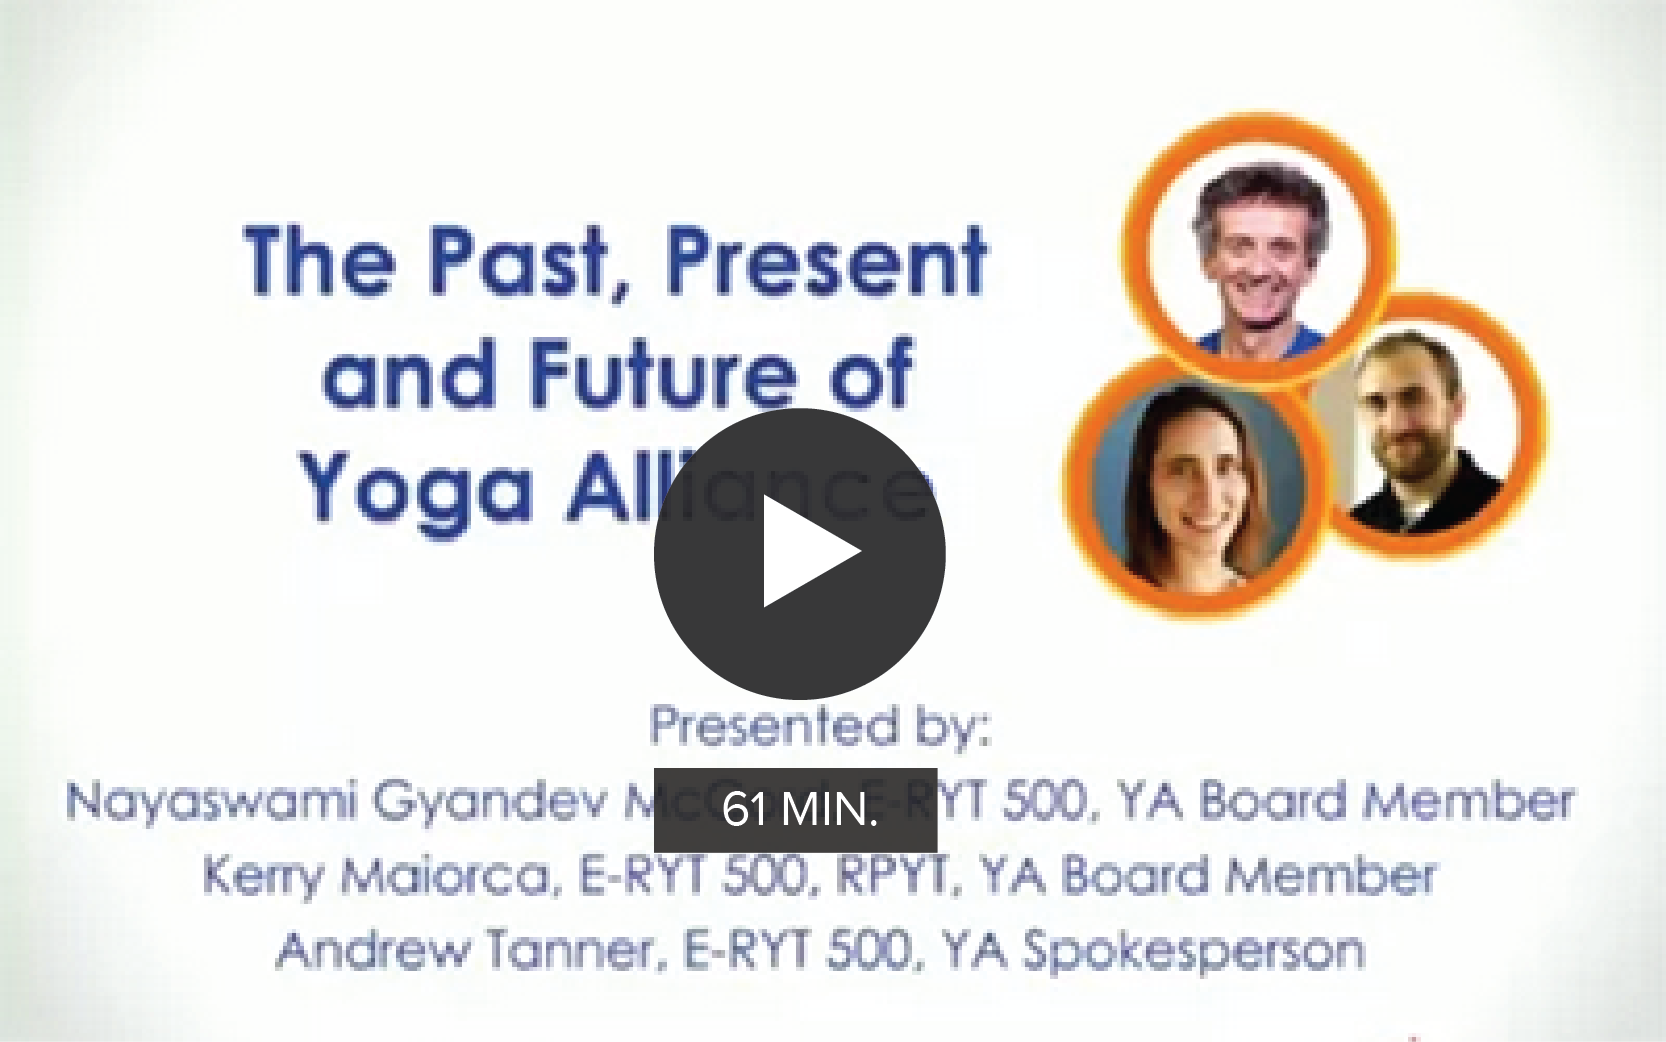 The Past, Present and Future of Yoga Alliance